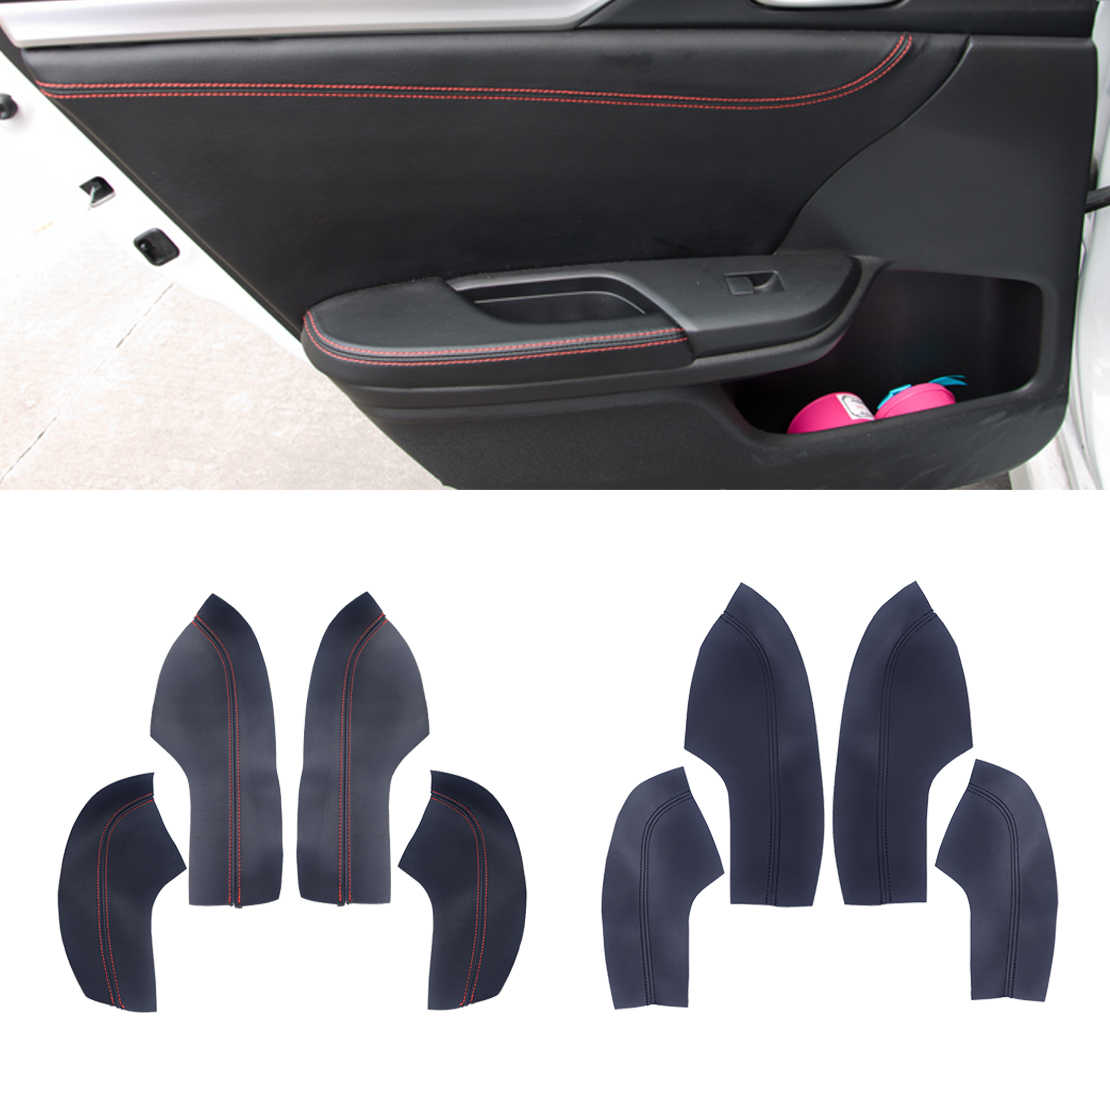 DWCX 4pcs Inner Door panel Armrest Protective Sleeve Trim PU Leather Surface Shell Cover Fit for Honda Civic 10th 2016 2017 2018